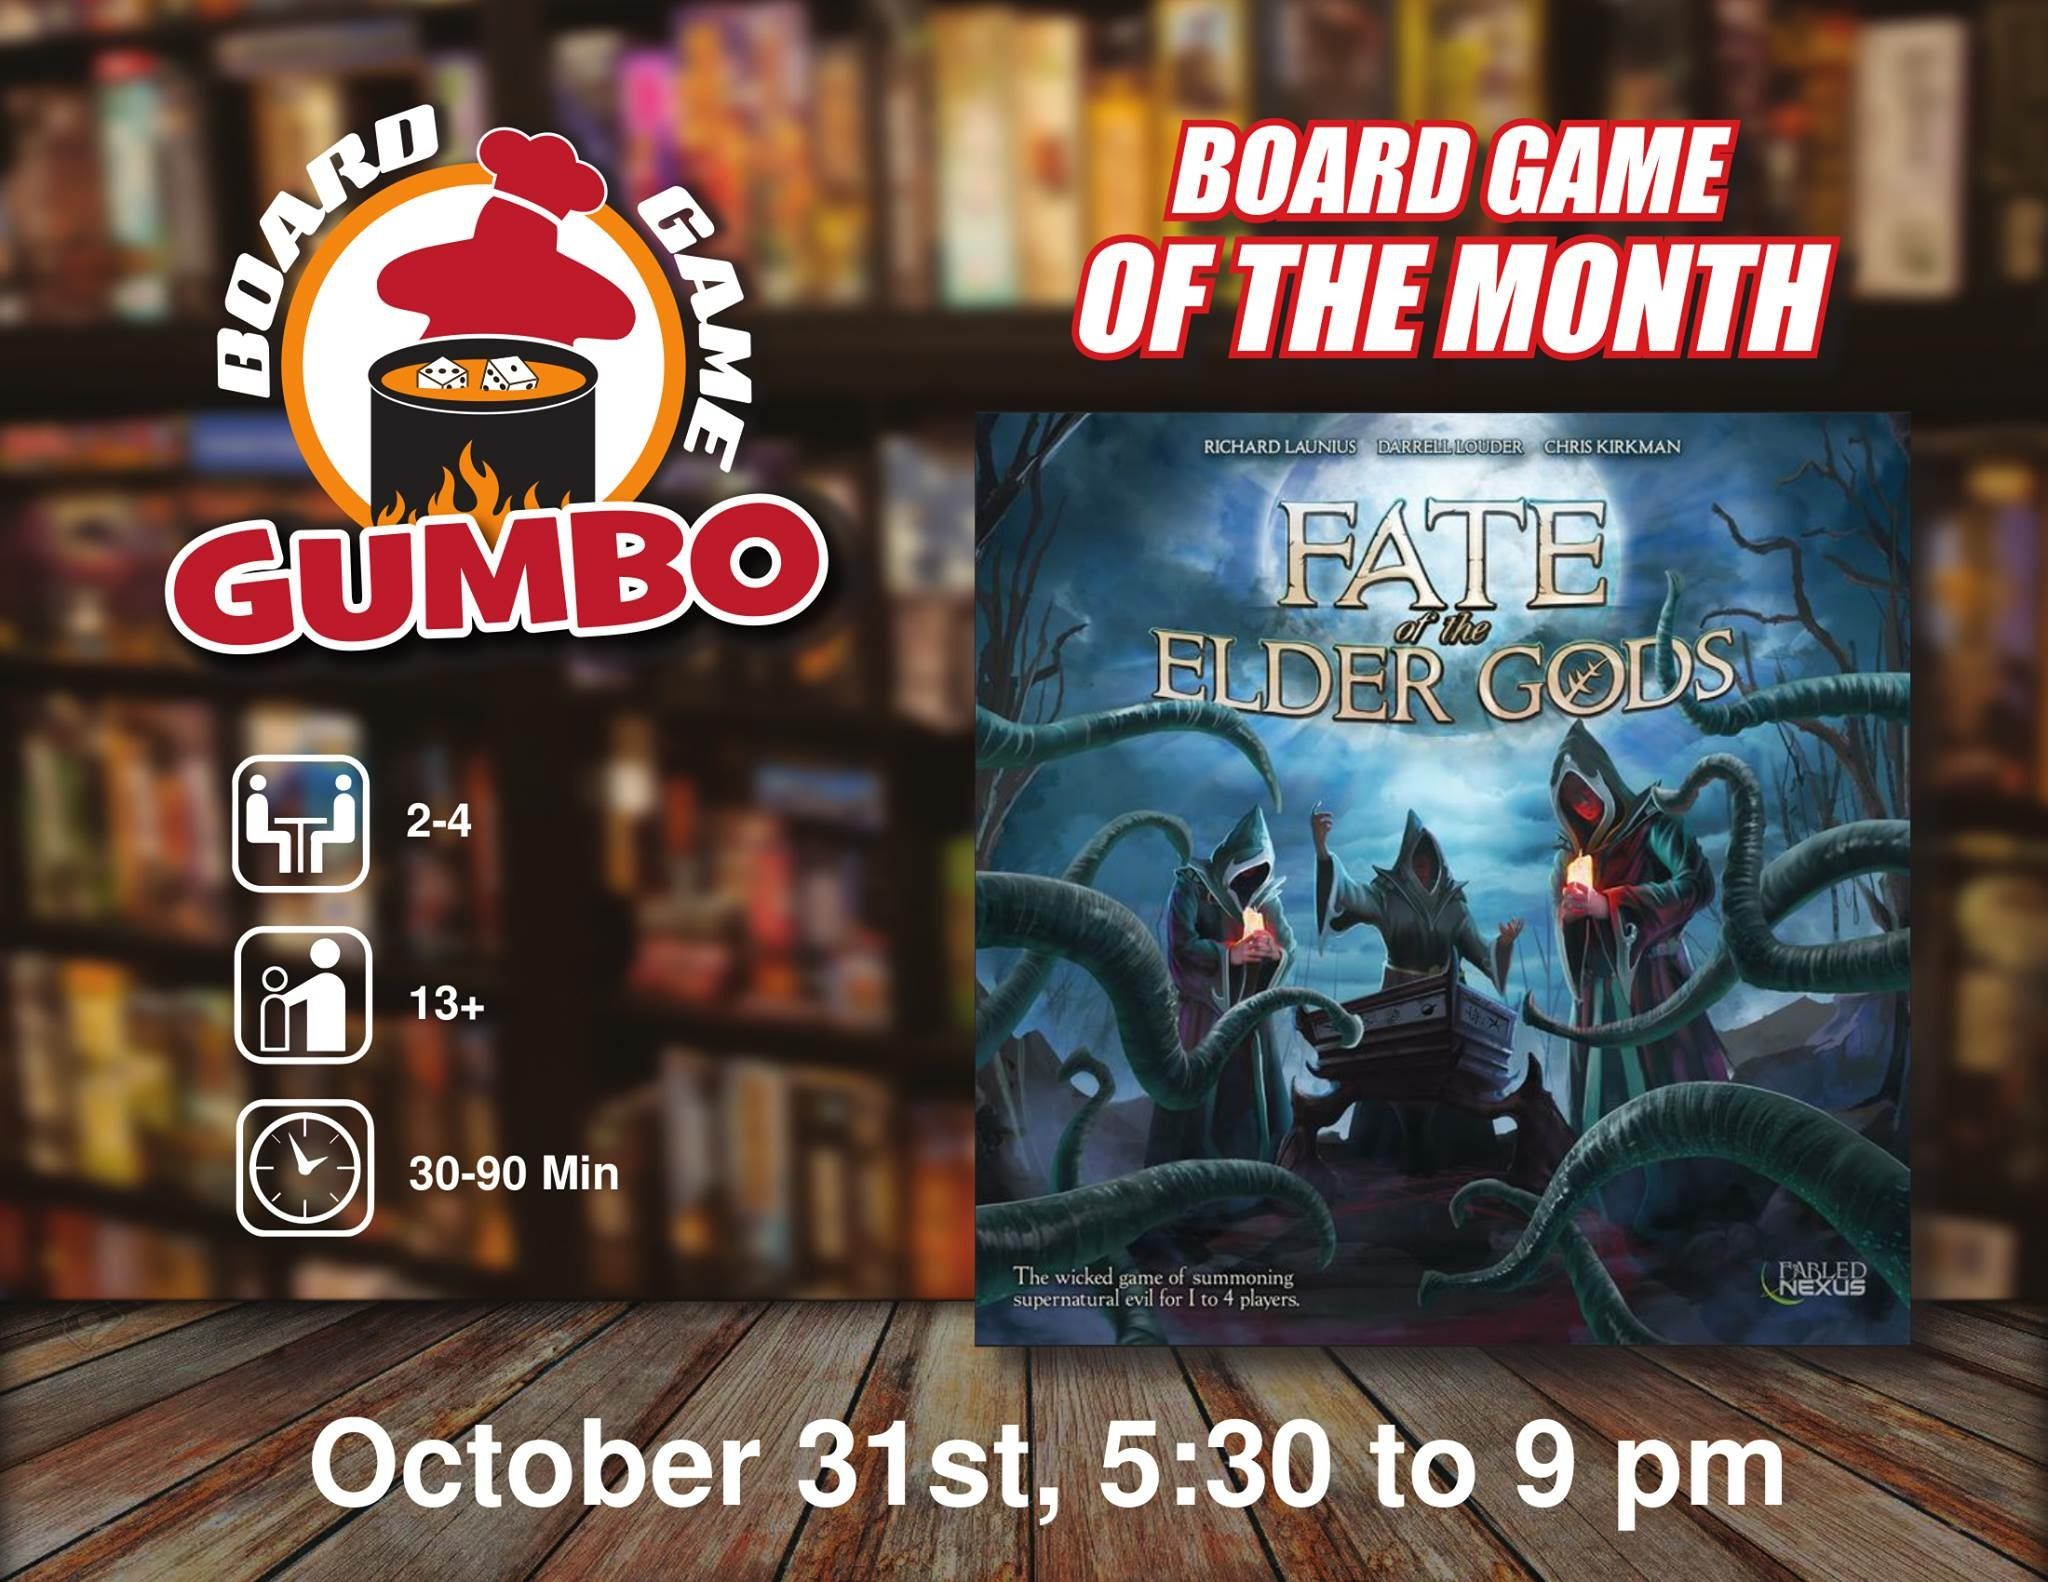 Board Game Gumbo | BoardGameGeek